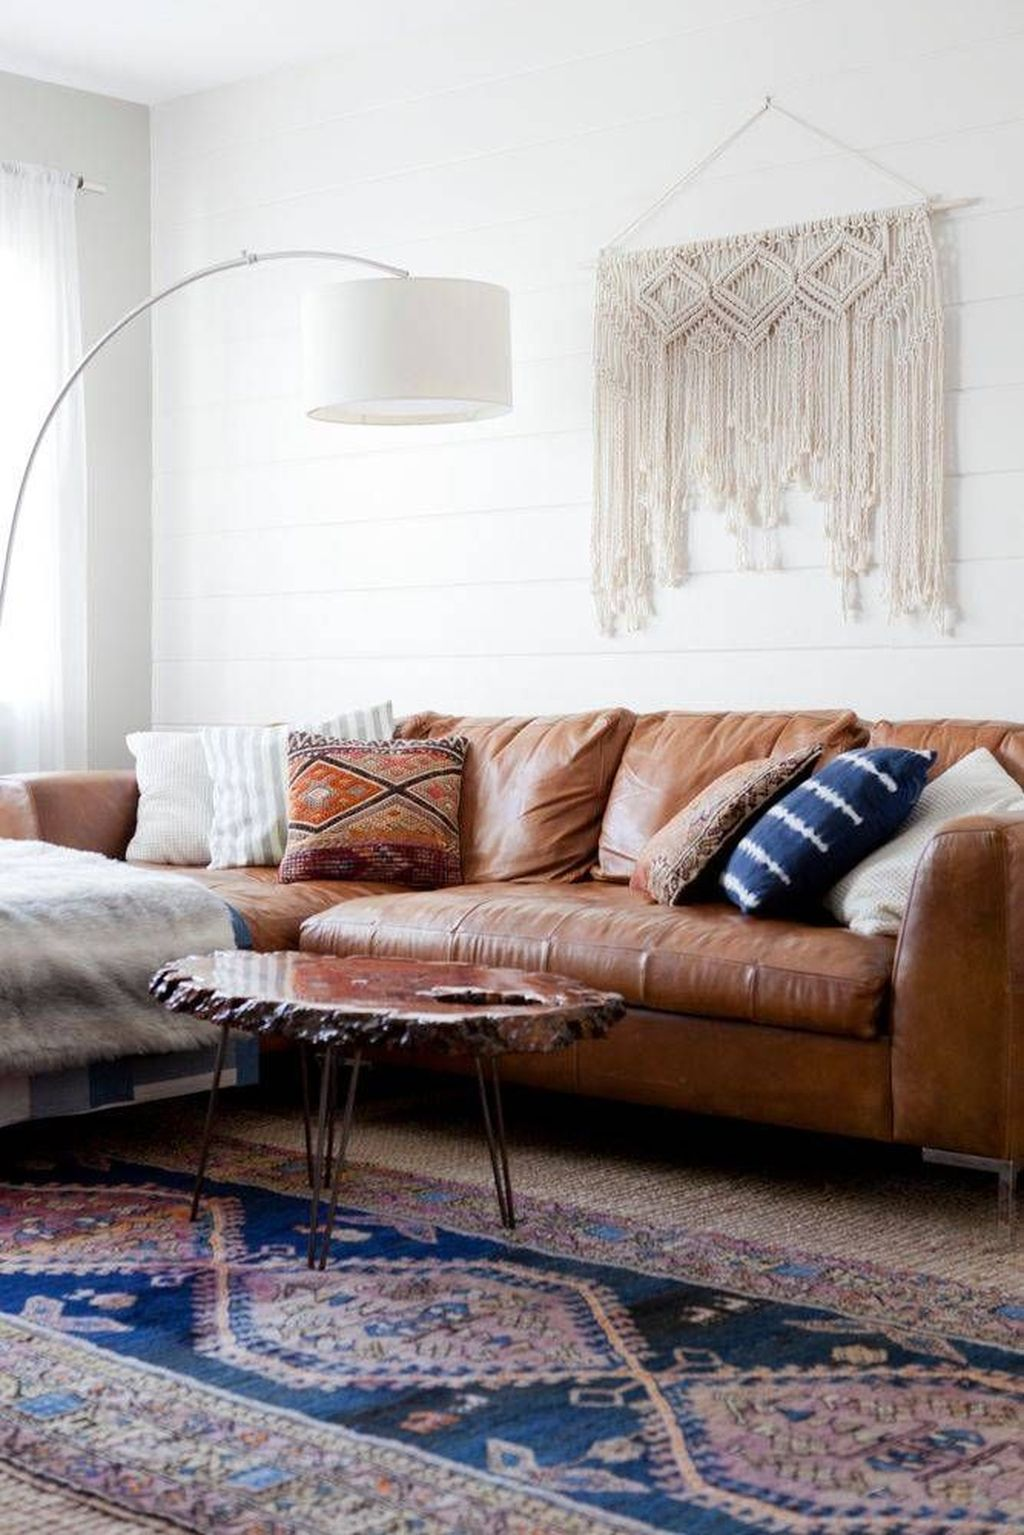 Totally Outstanding Sectional Sofa Decoration Ideas With Lamps 67